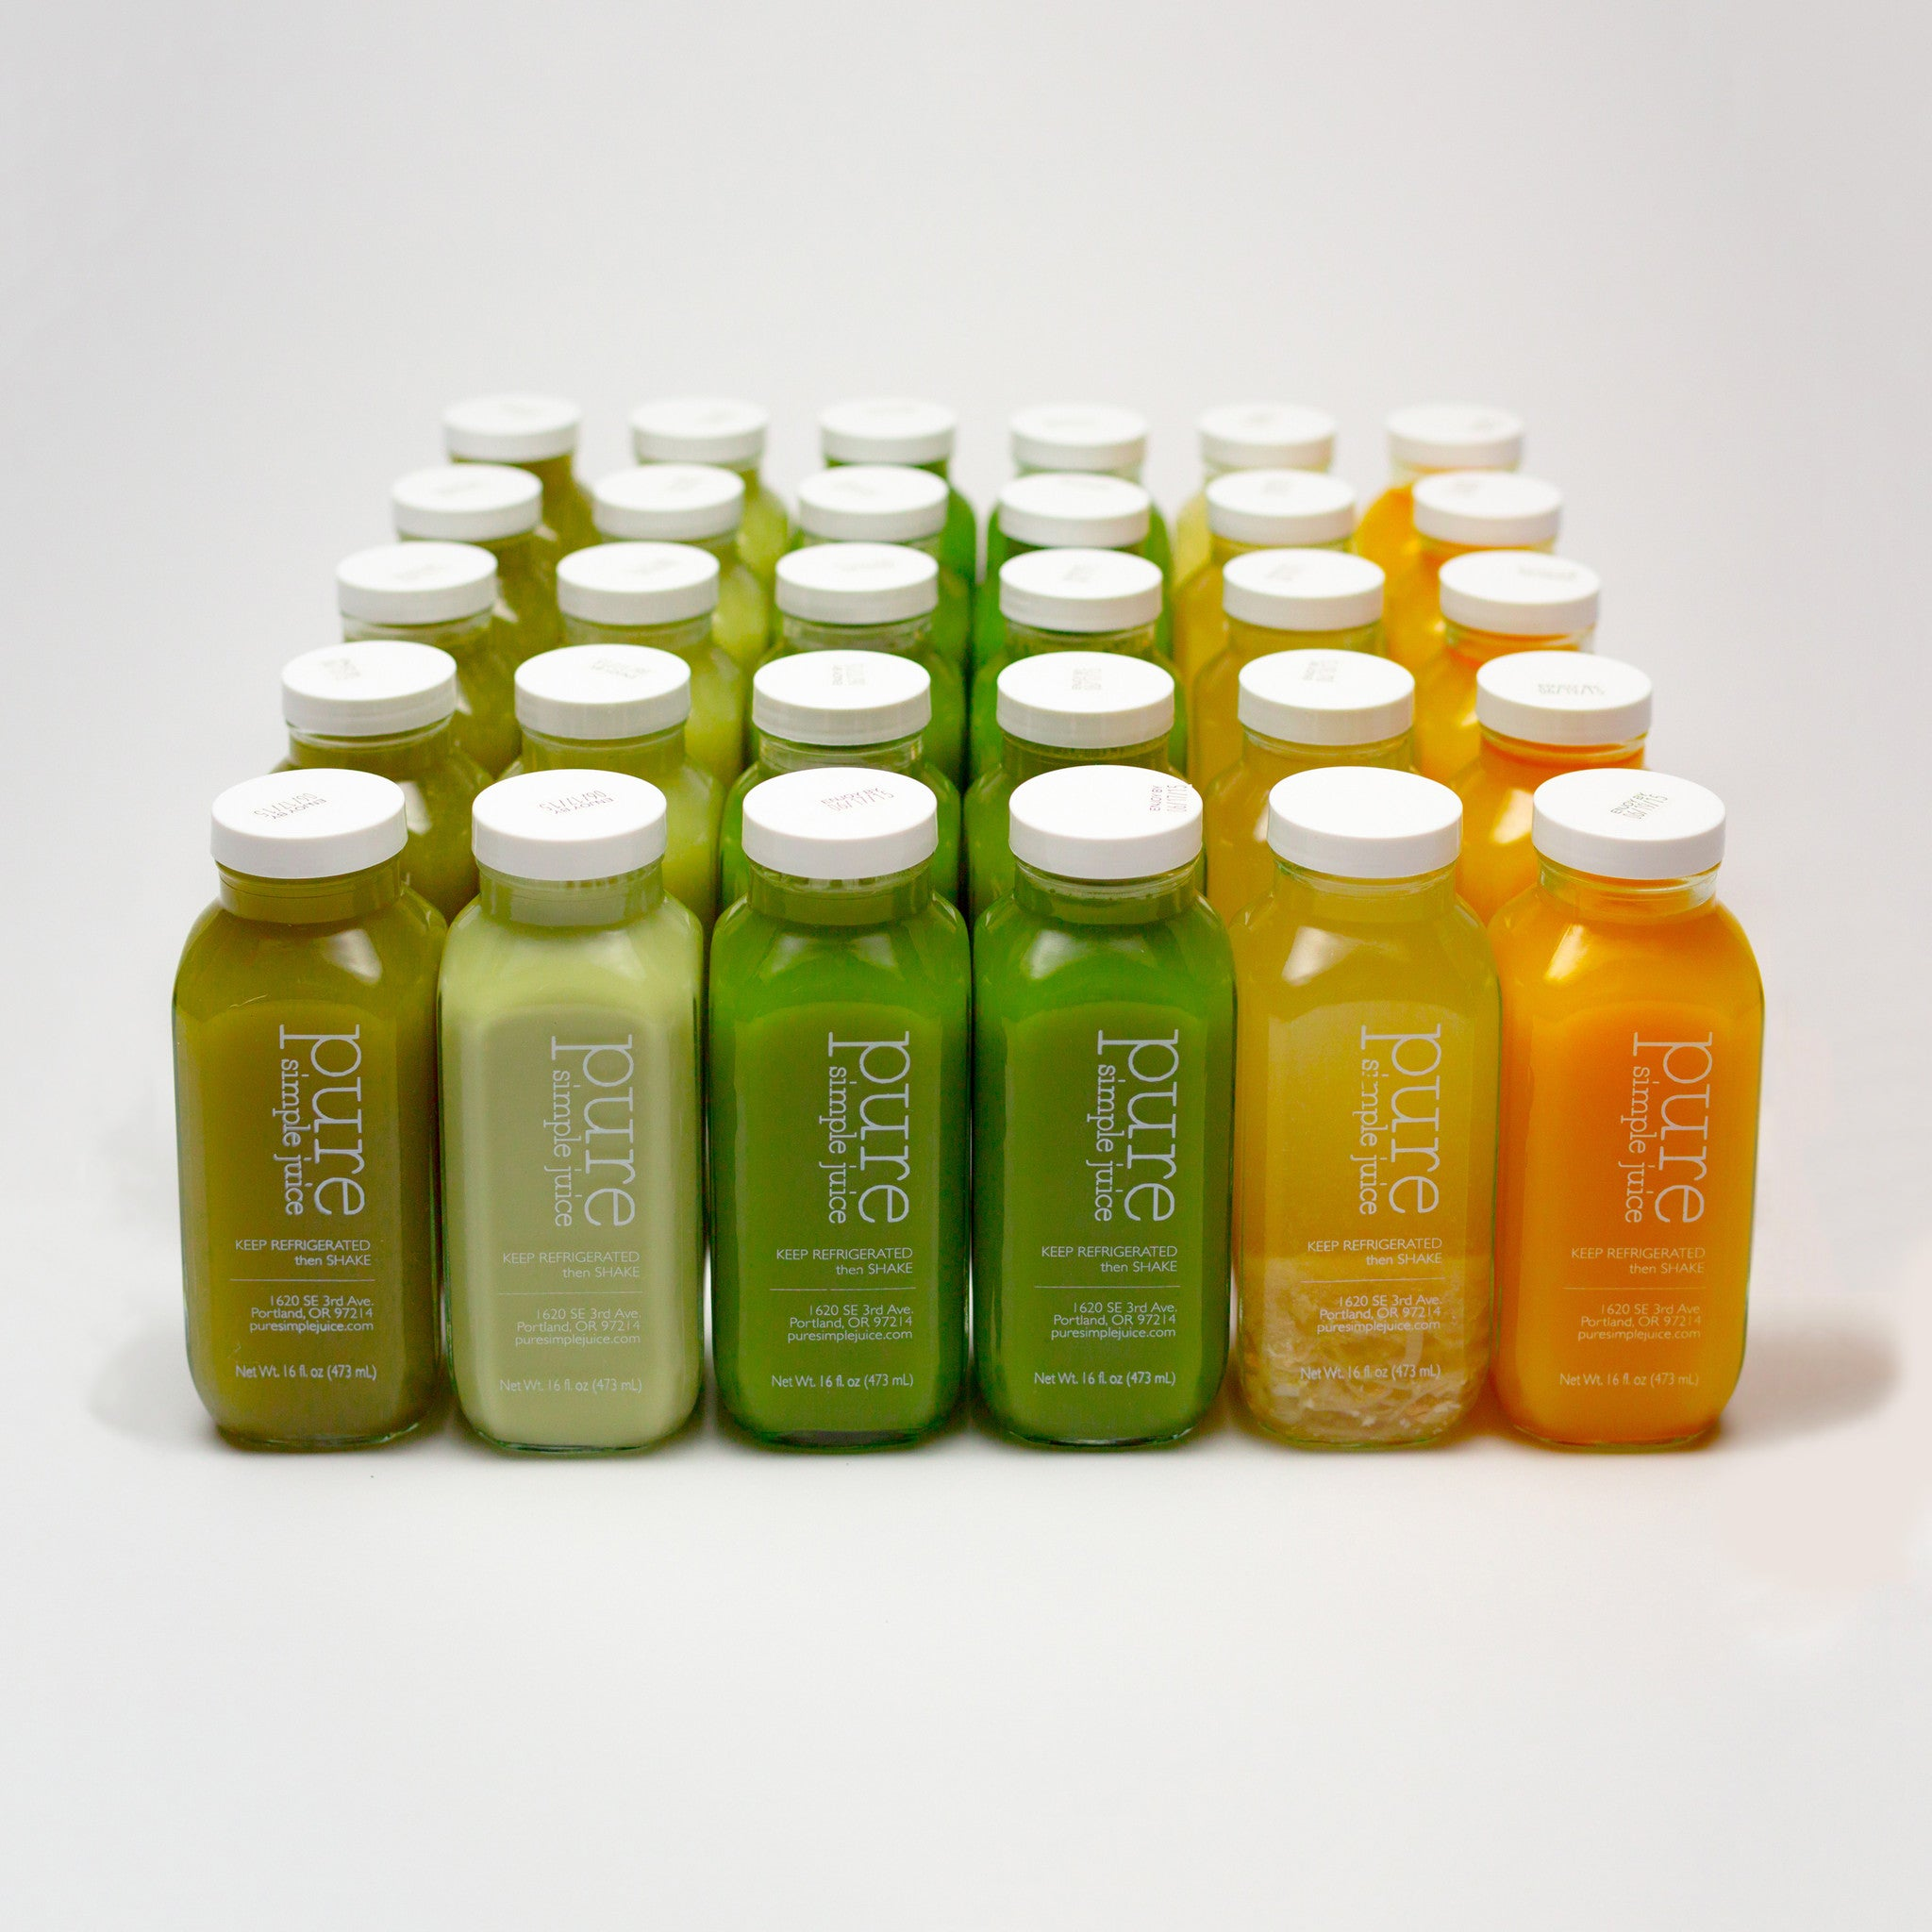 5-Day Deep Green Cleanse